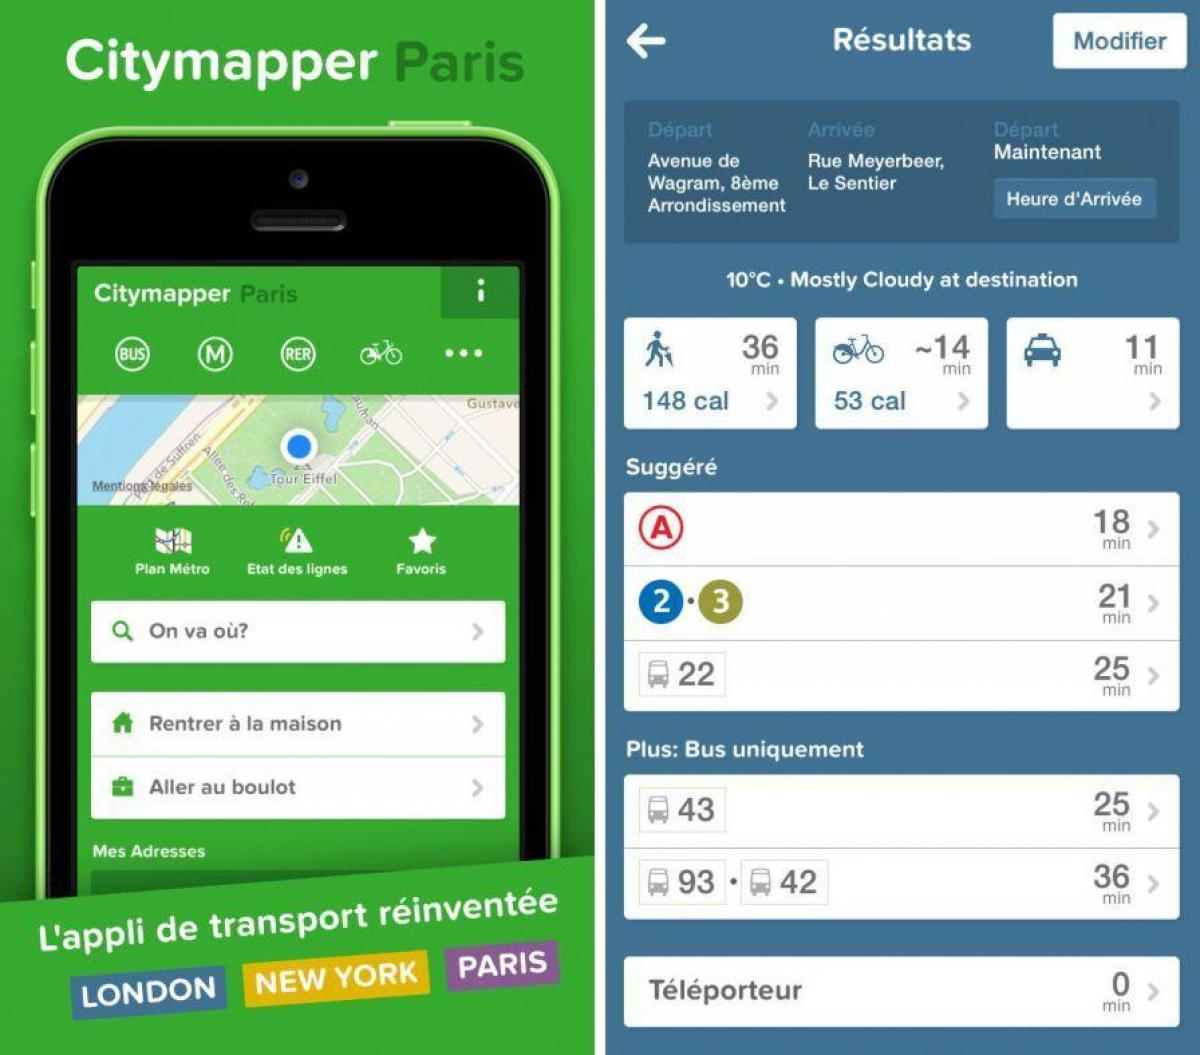 Map of citymapper Paris